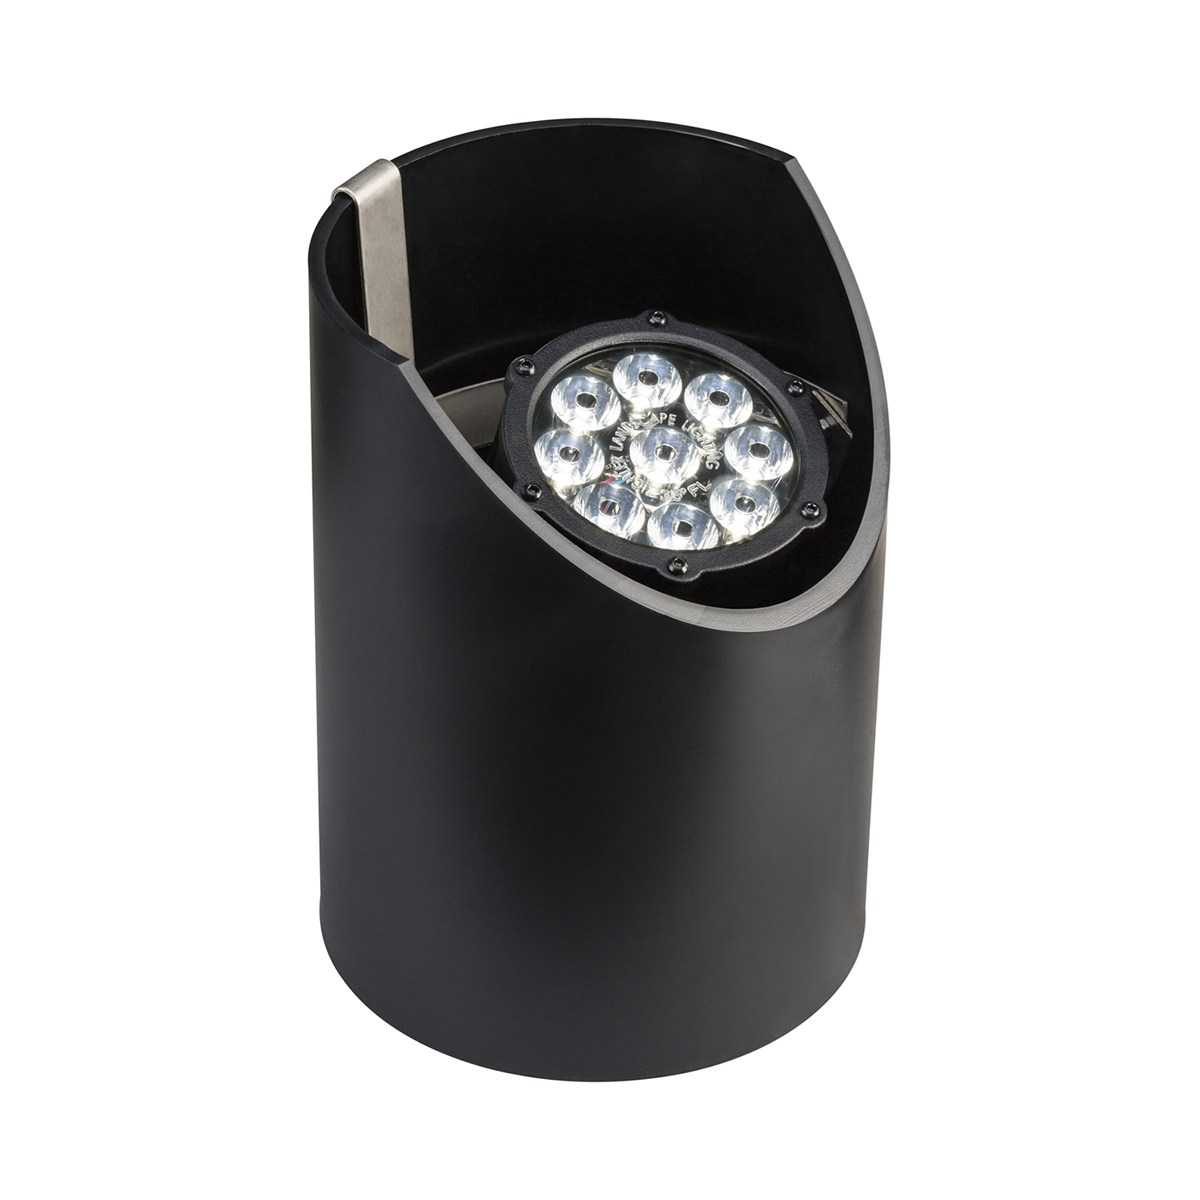 12.4W 10 Degree LED Well Light BKT